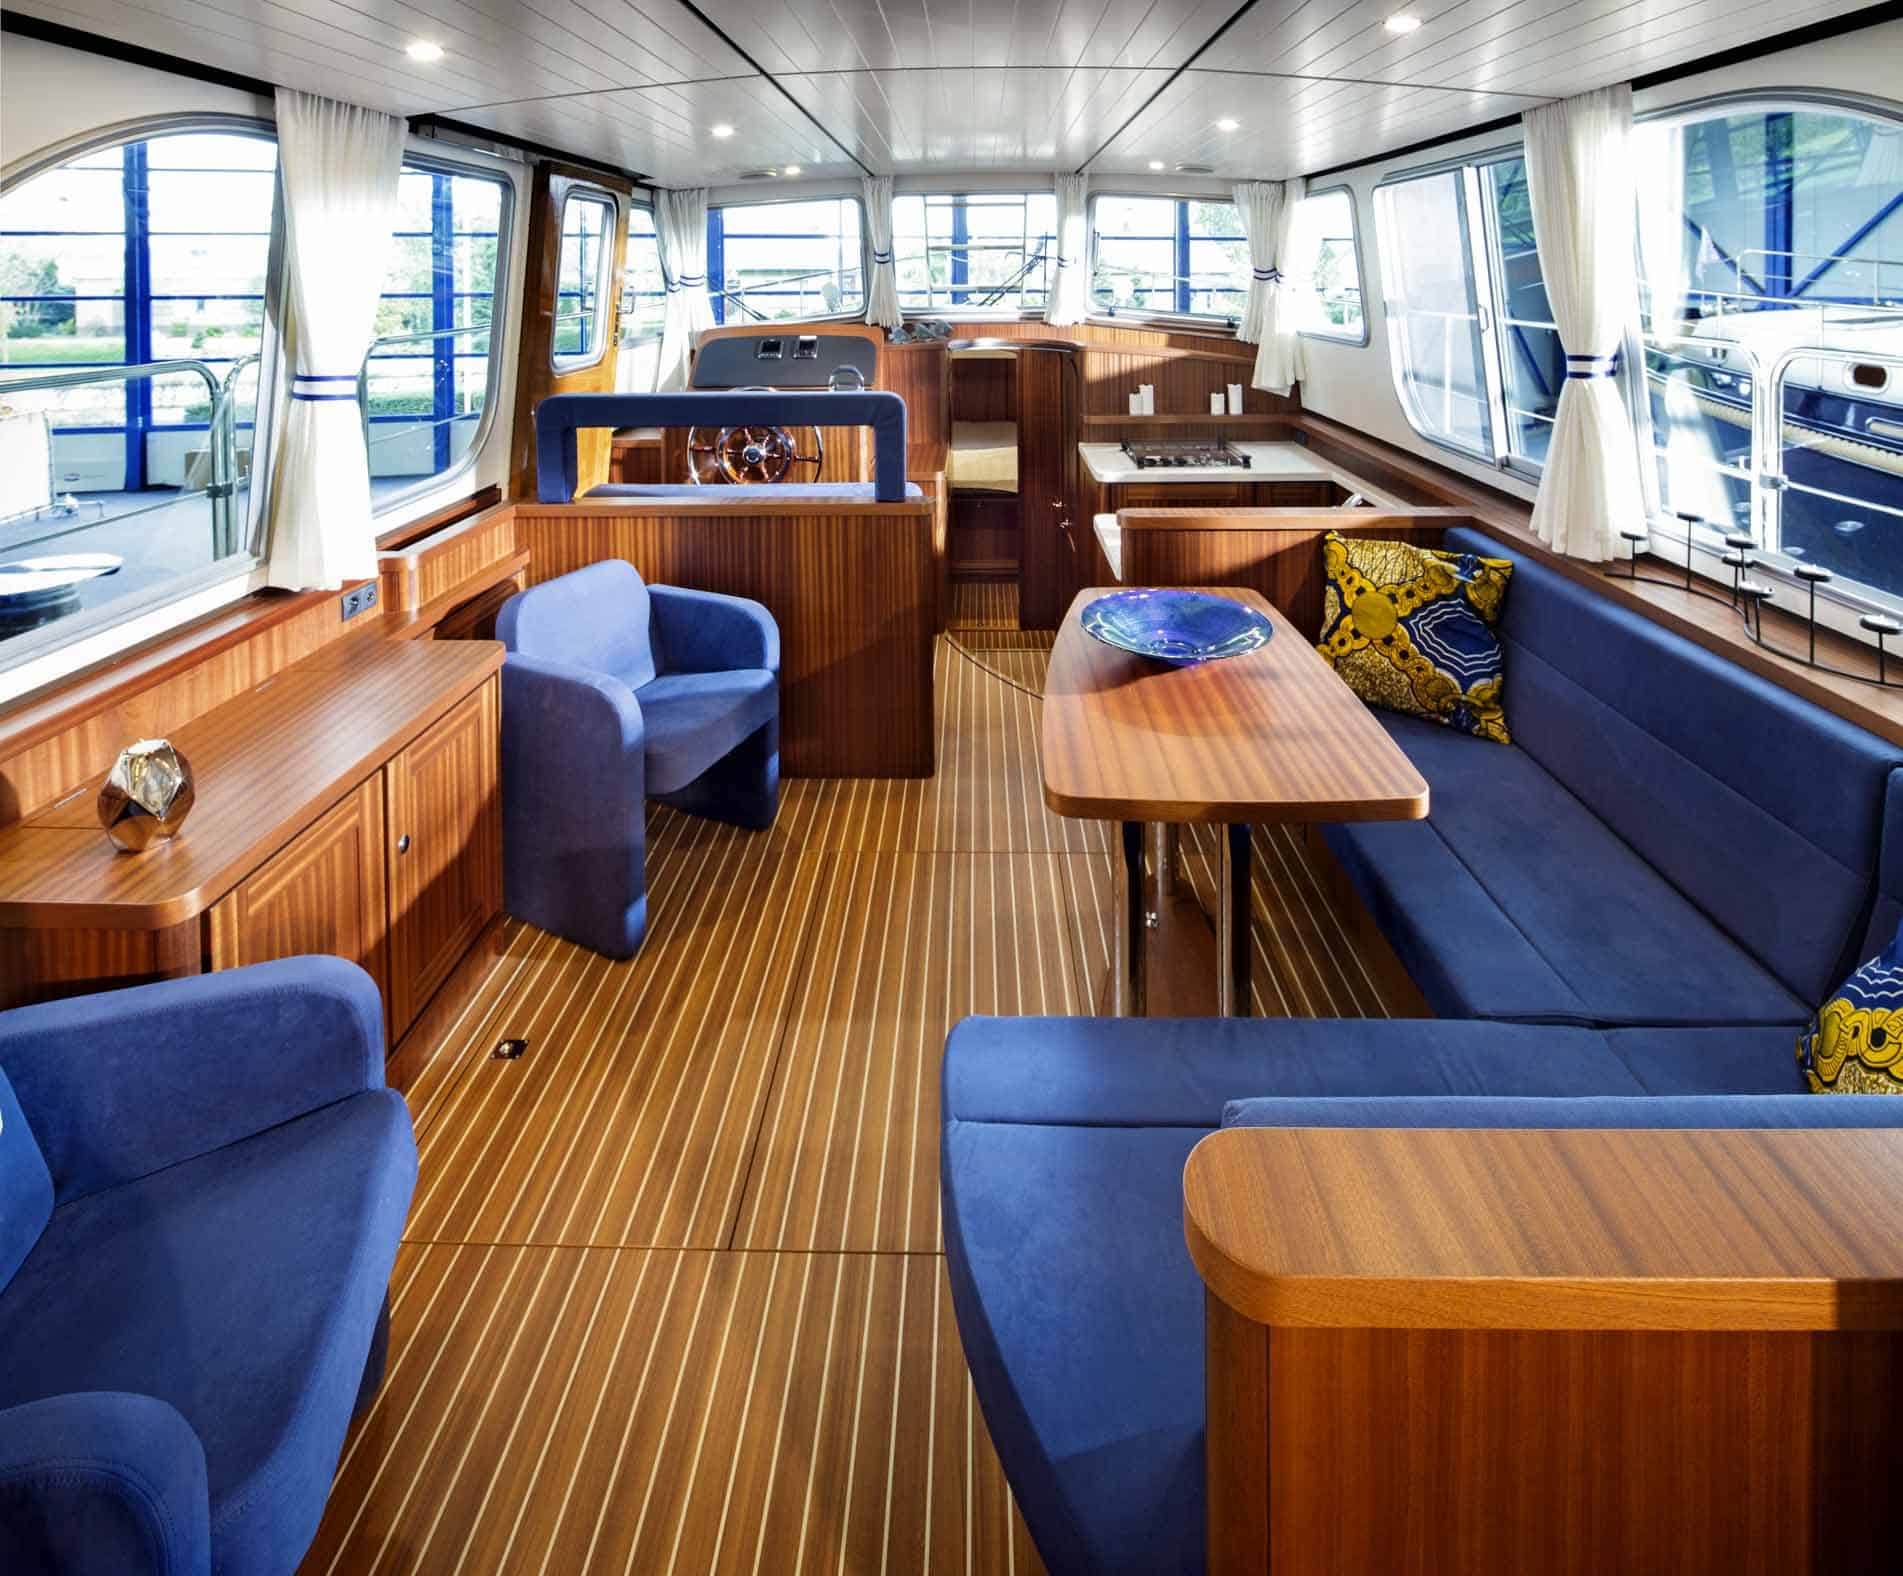 Linssen-Classic-Sturdy-410-Sedan-Deckbridge_251115-039